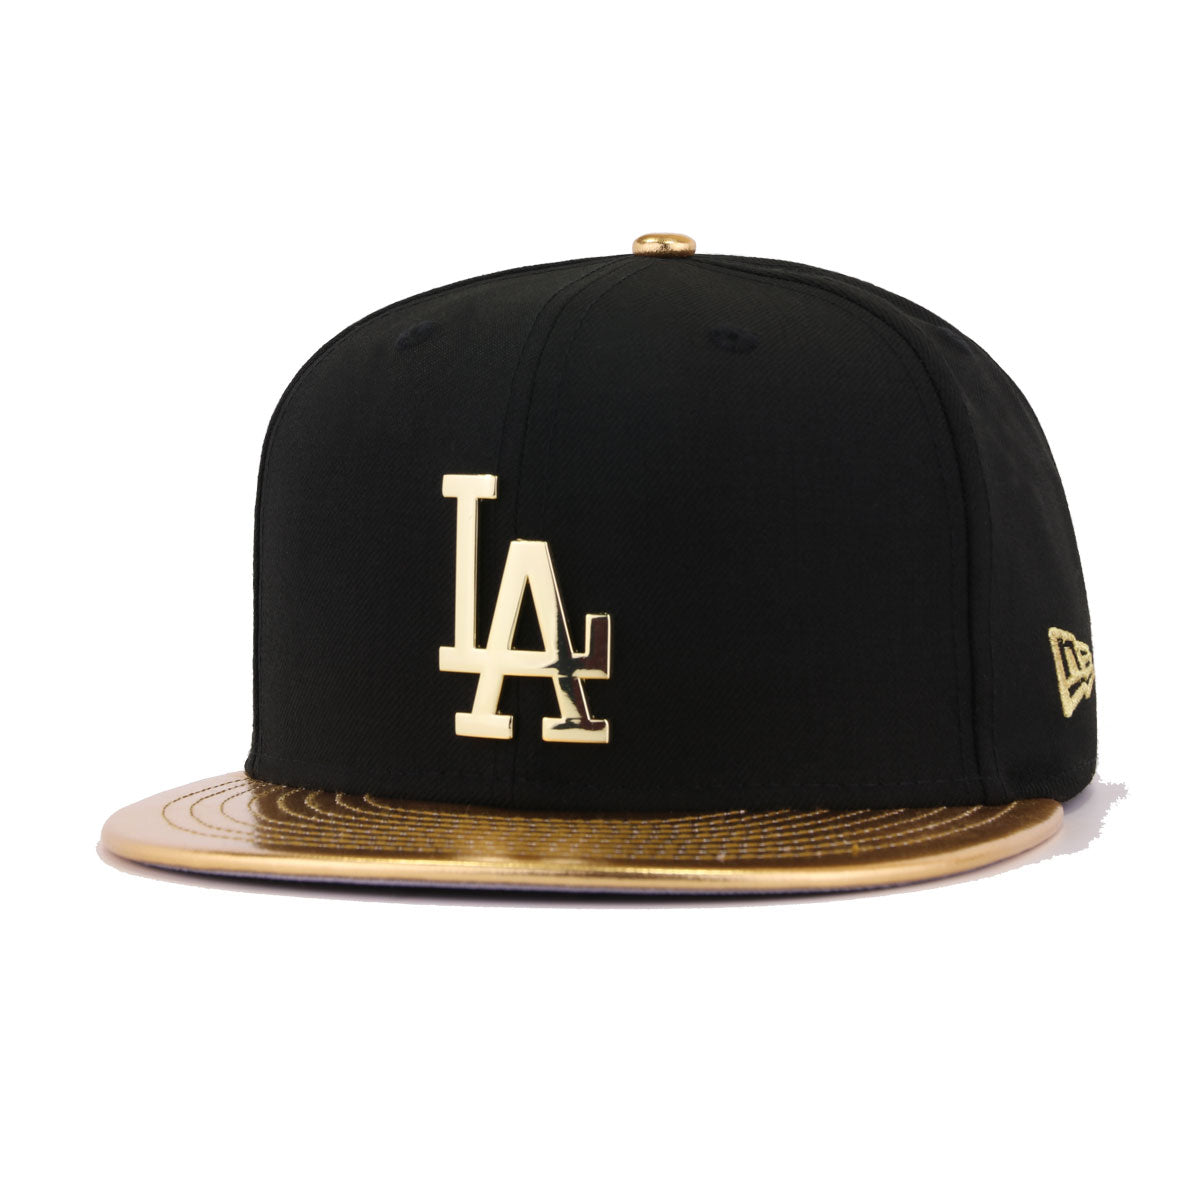 Los Angeles Dodgers Metallic Gold /& Silver LA New Era 59FIFTY fitted//hat//cap